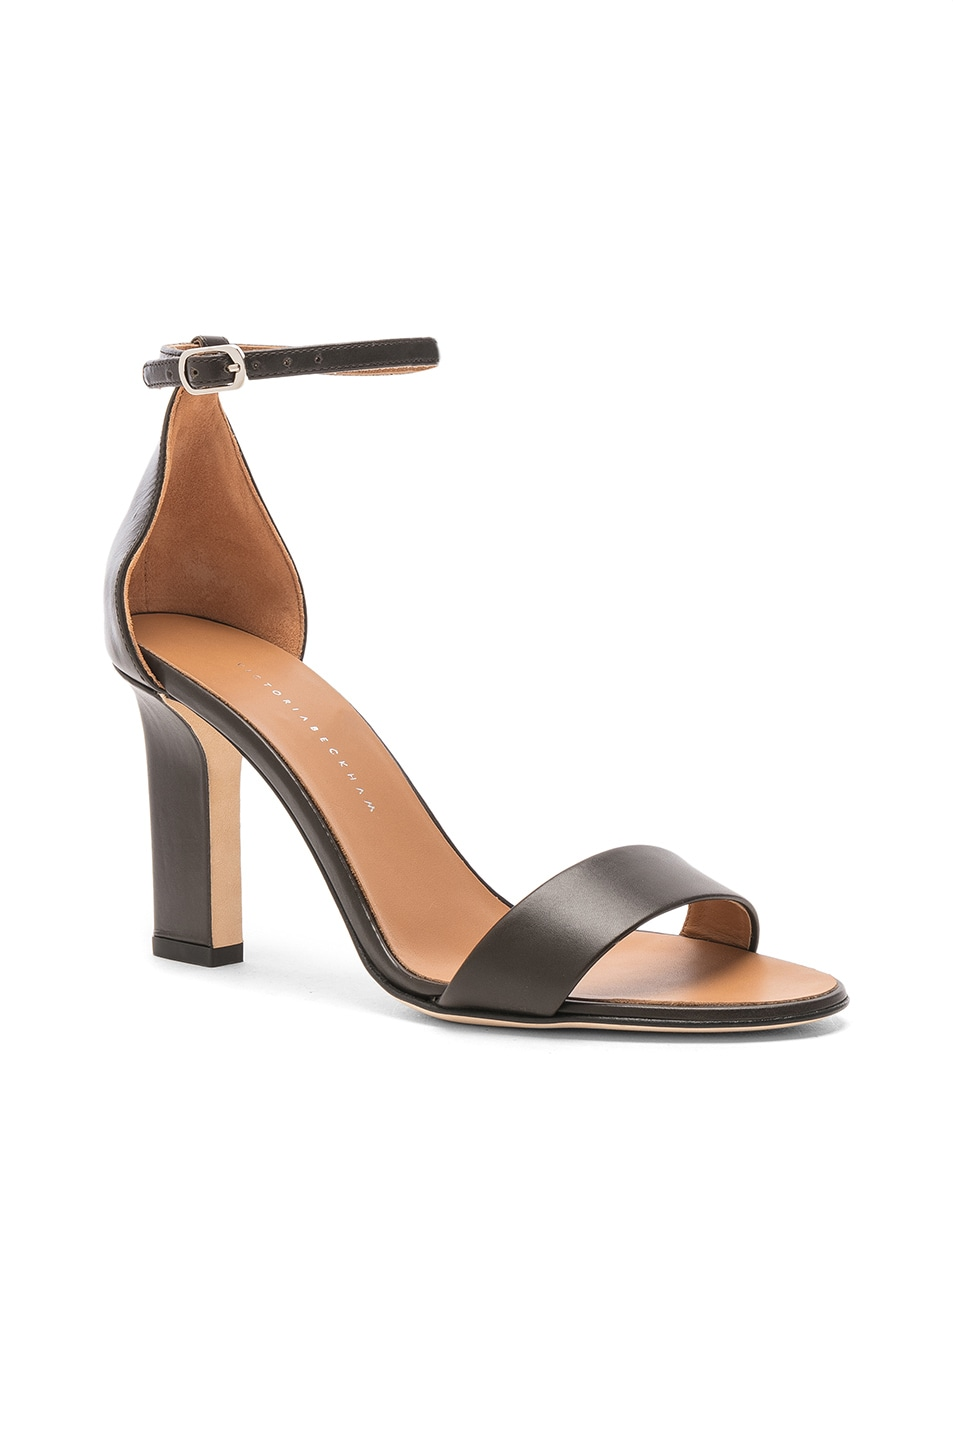 Image 2 of Victoria Beckham Leather Anna Ankle Strap Sandals in Khaki